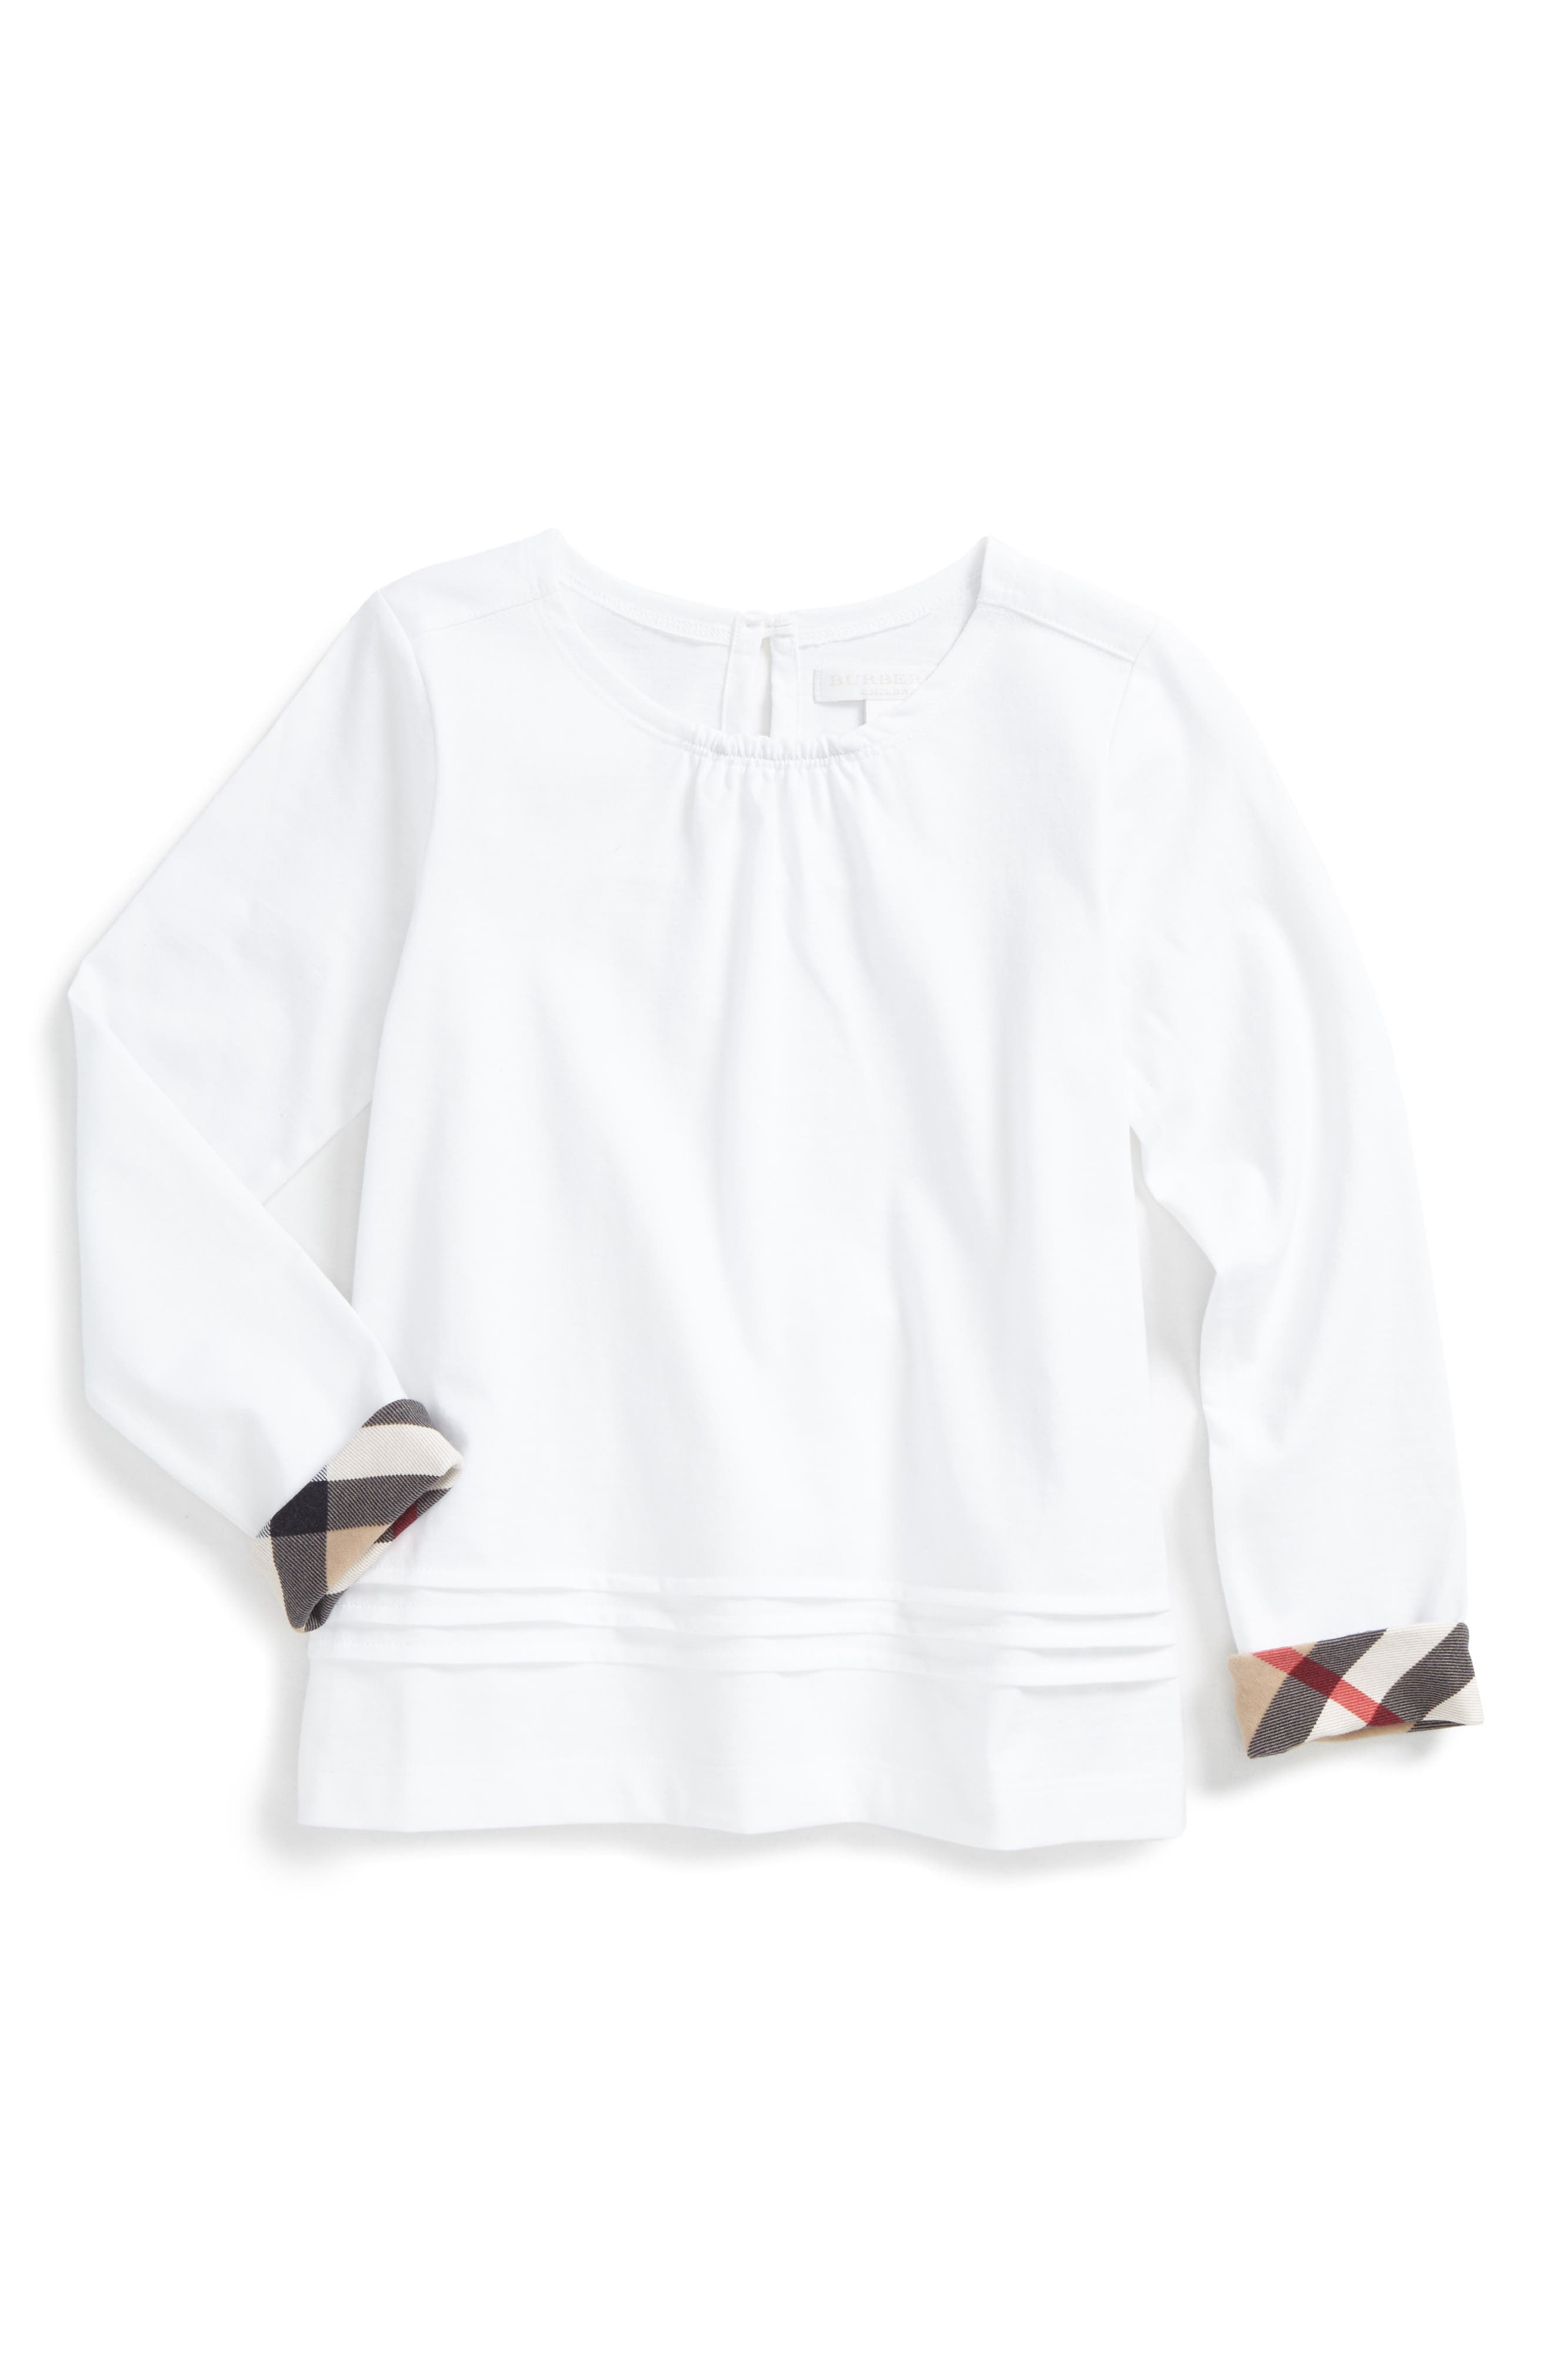 Gisselle Tee,                         Main,                         color, White